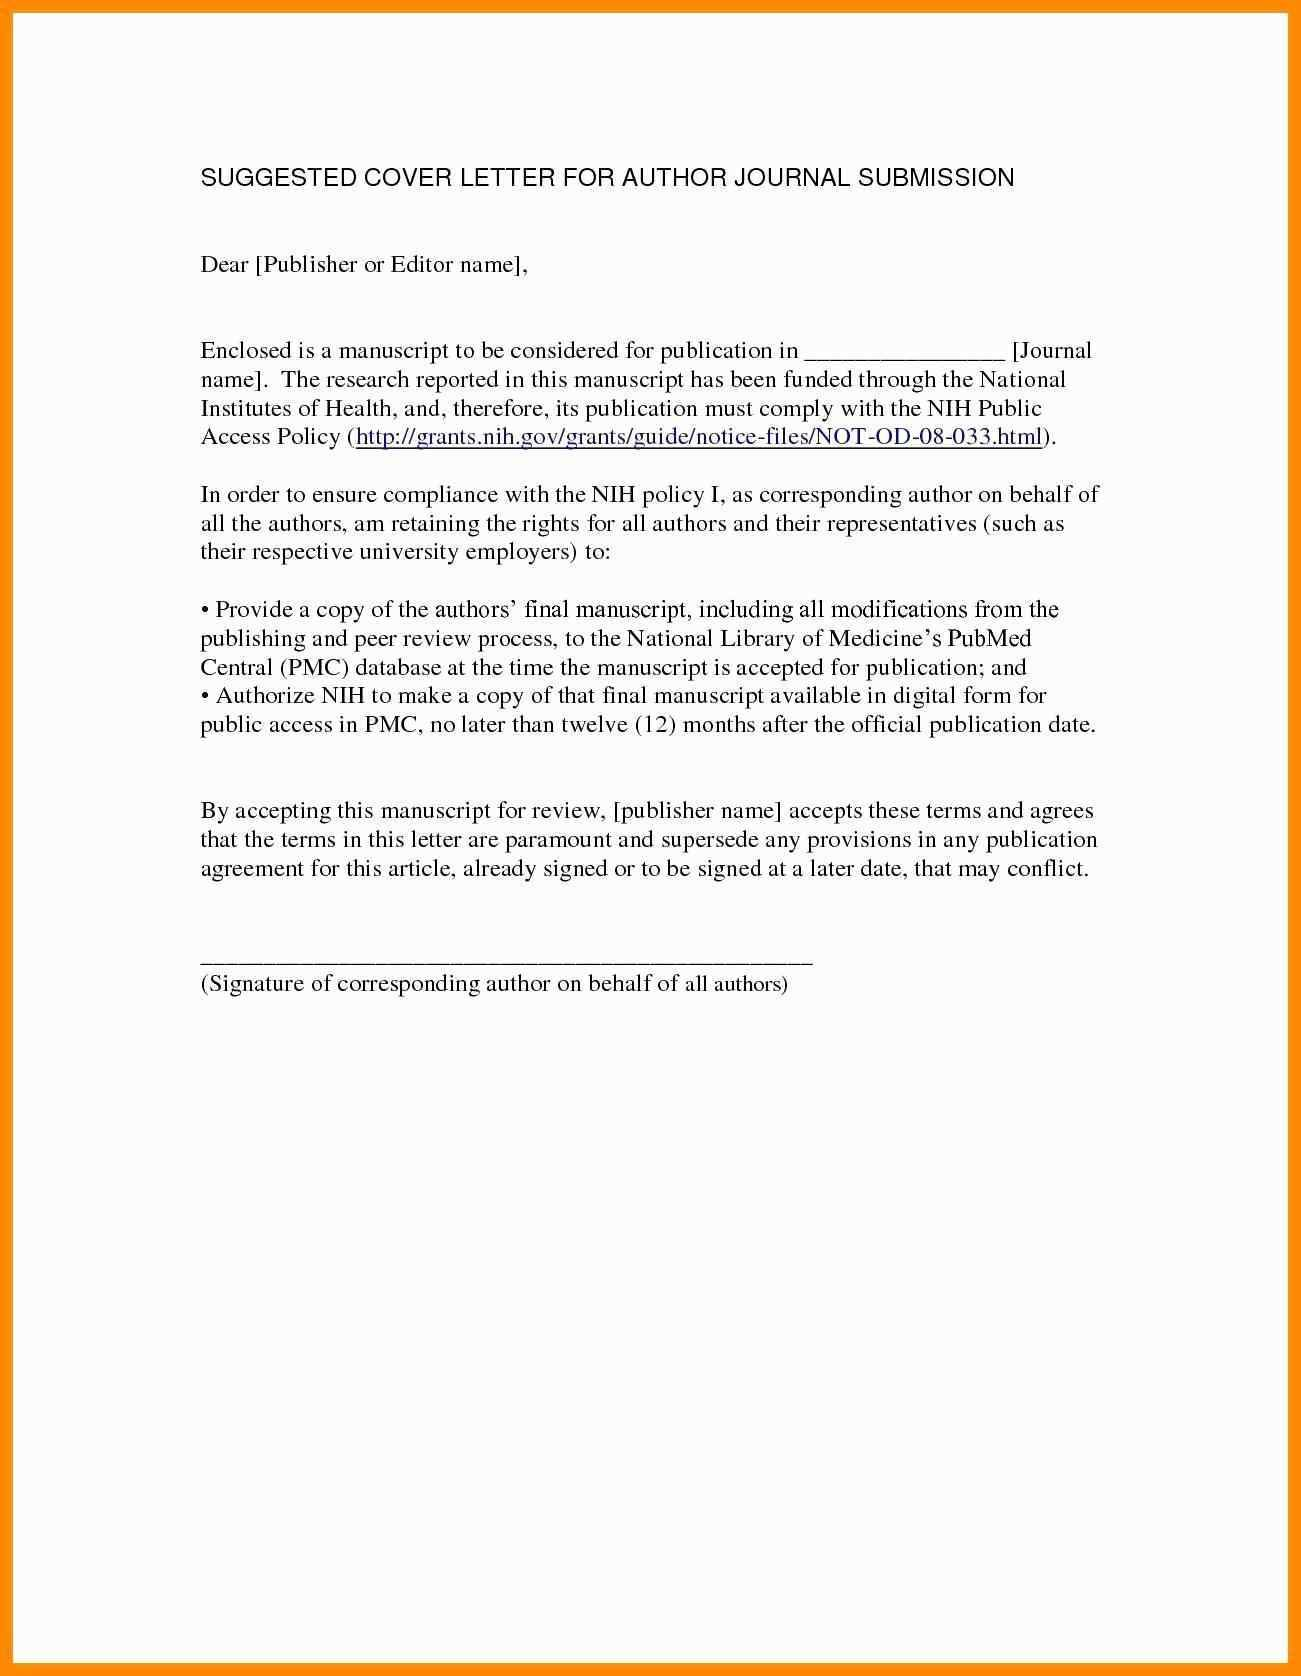 005 Cover Letter For Research Paper Striking Publication Manuscript Article Full